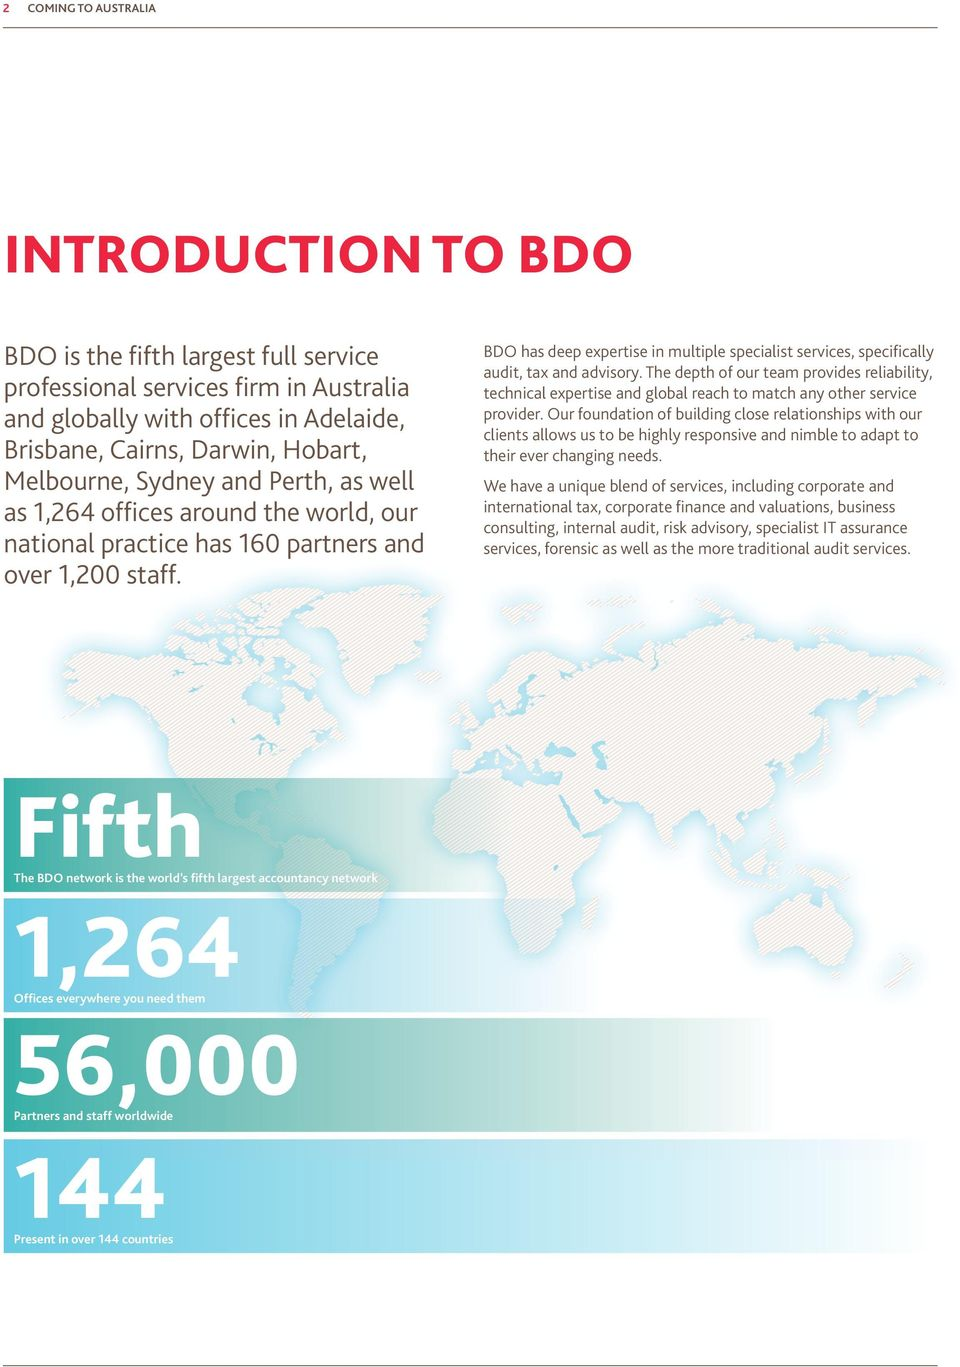 BDO has deep expertise in multiple specialist services, specifically audit, tax and advisory.